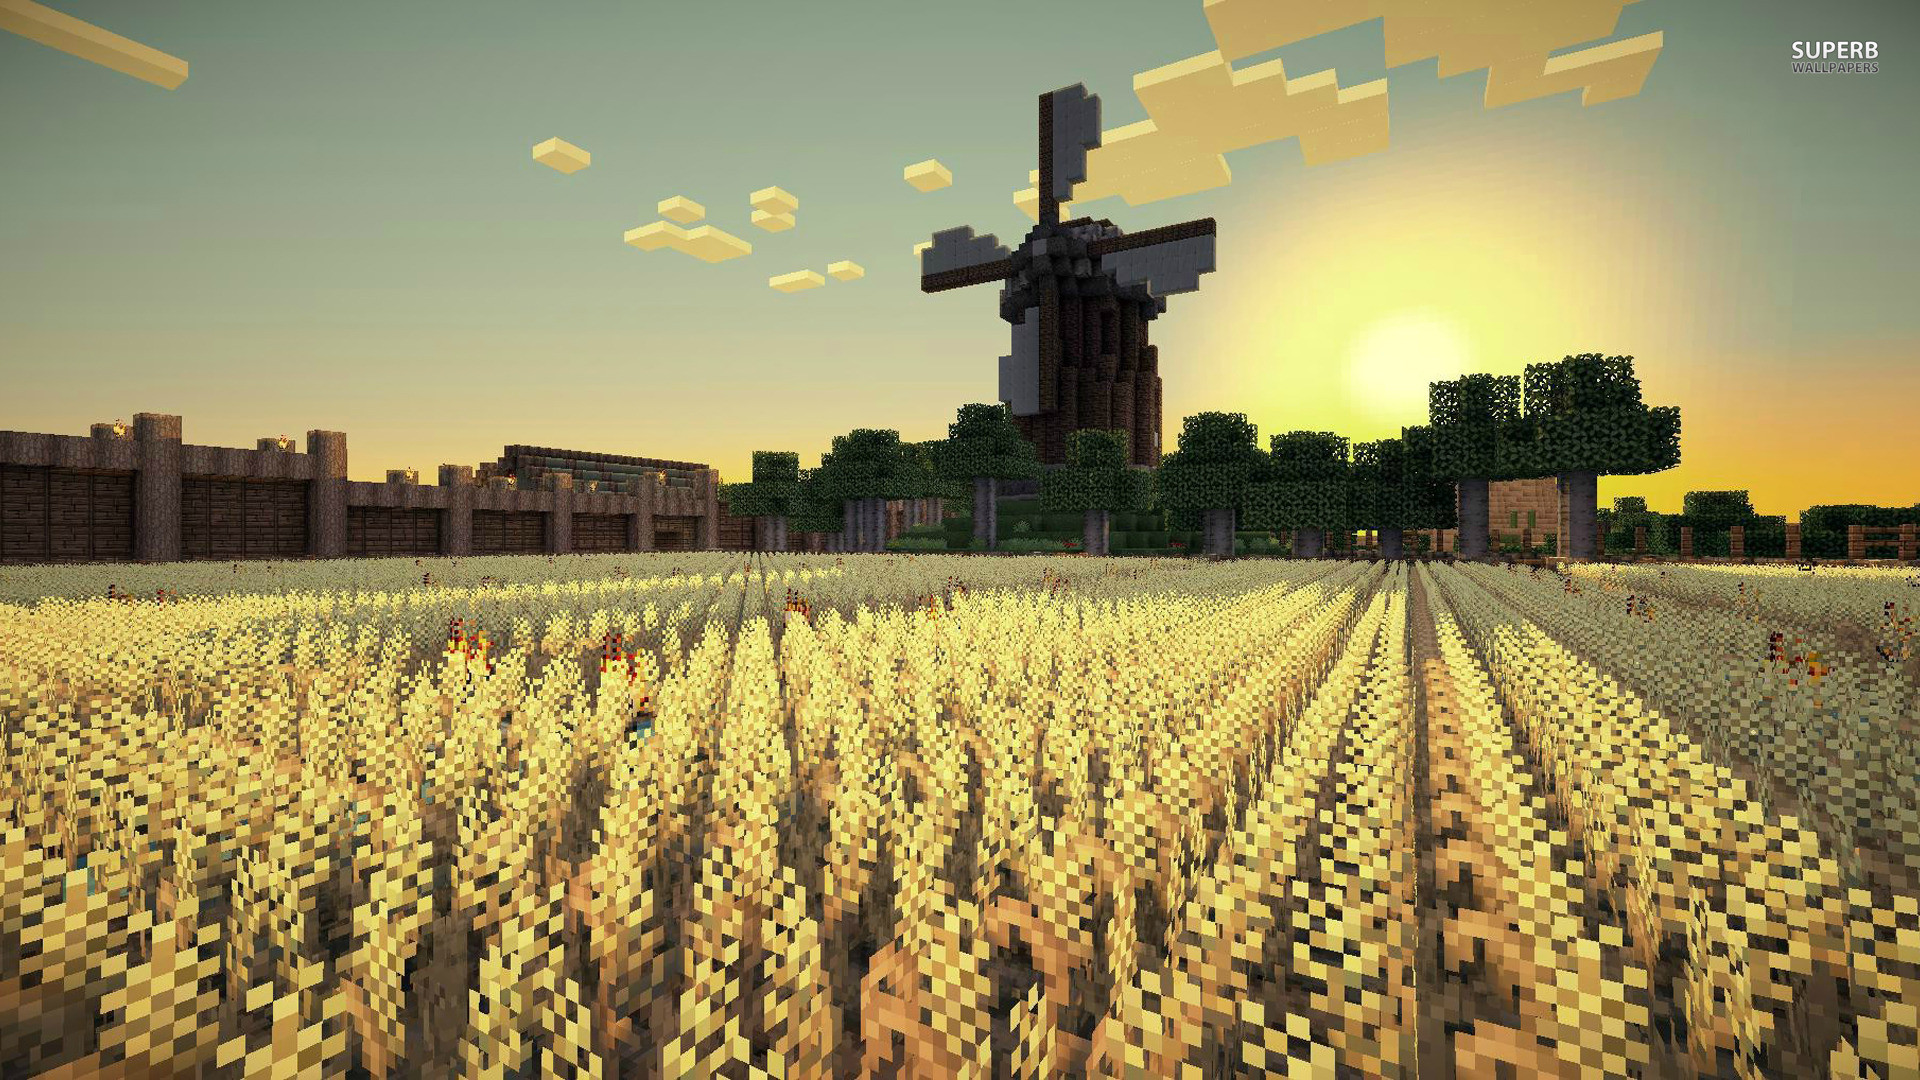 Minecraft Background Field Hd Background Wallpapers Background 4k Minecraft 1920x1080 Wallpaper Teahub Io